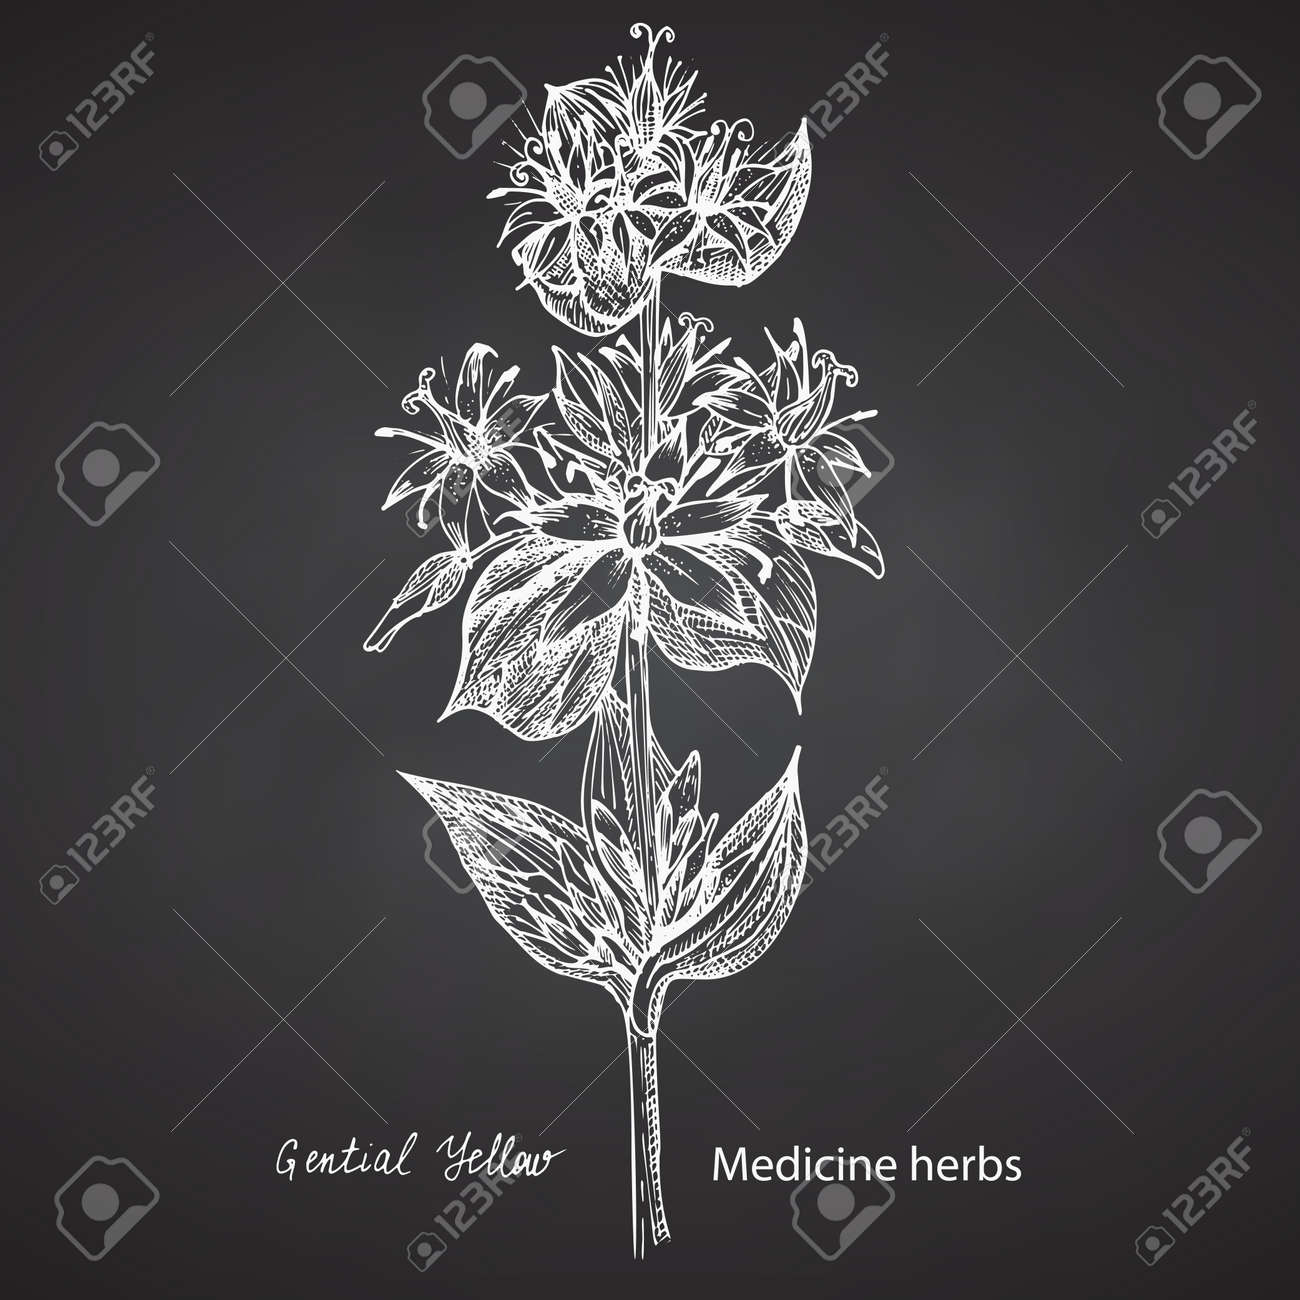 Set hand drawn of Gentian yellow, lives and flowers in white color isolated on chalkboard background. Retro vintage graphic design. Botanical sketch drawing, engraving style. Vector. - 162597288